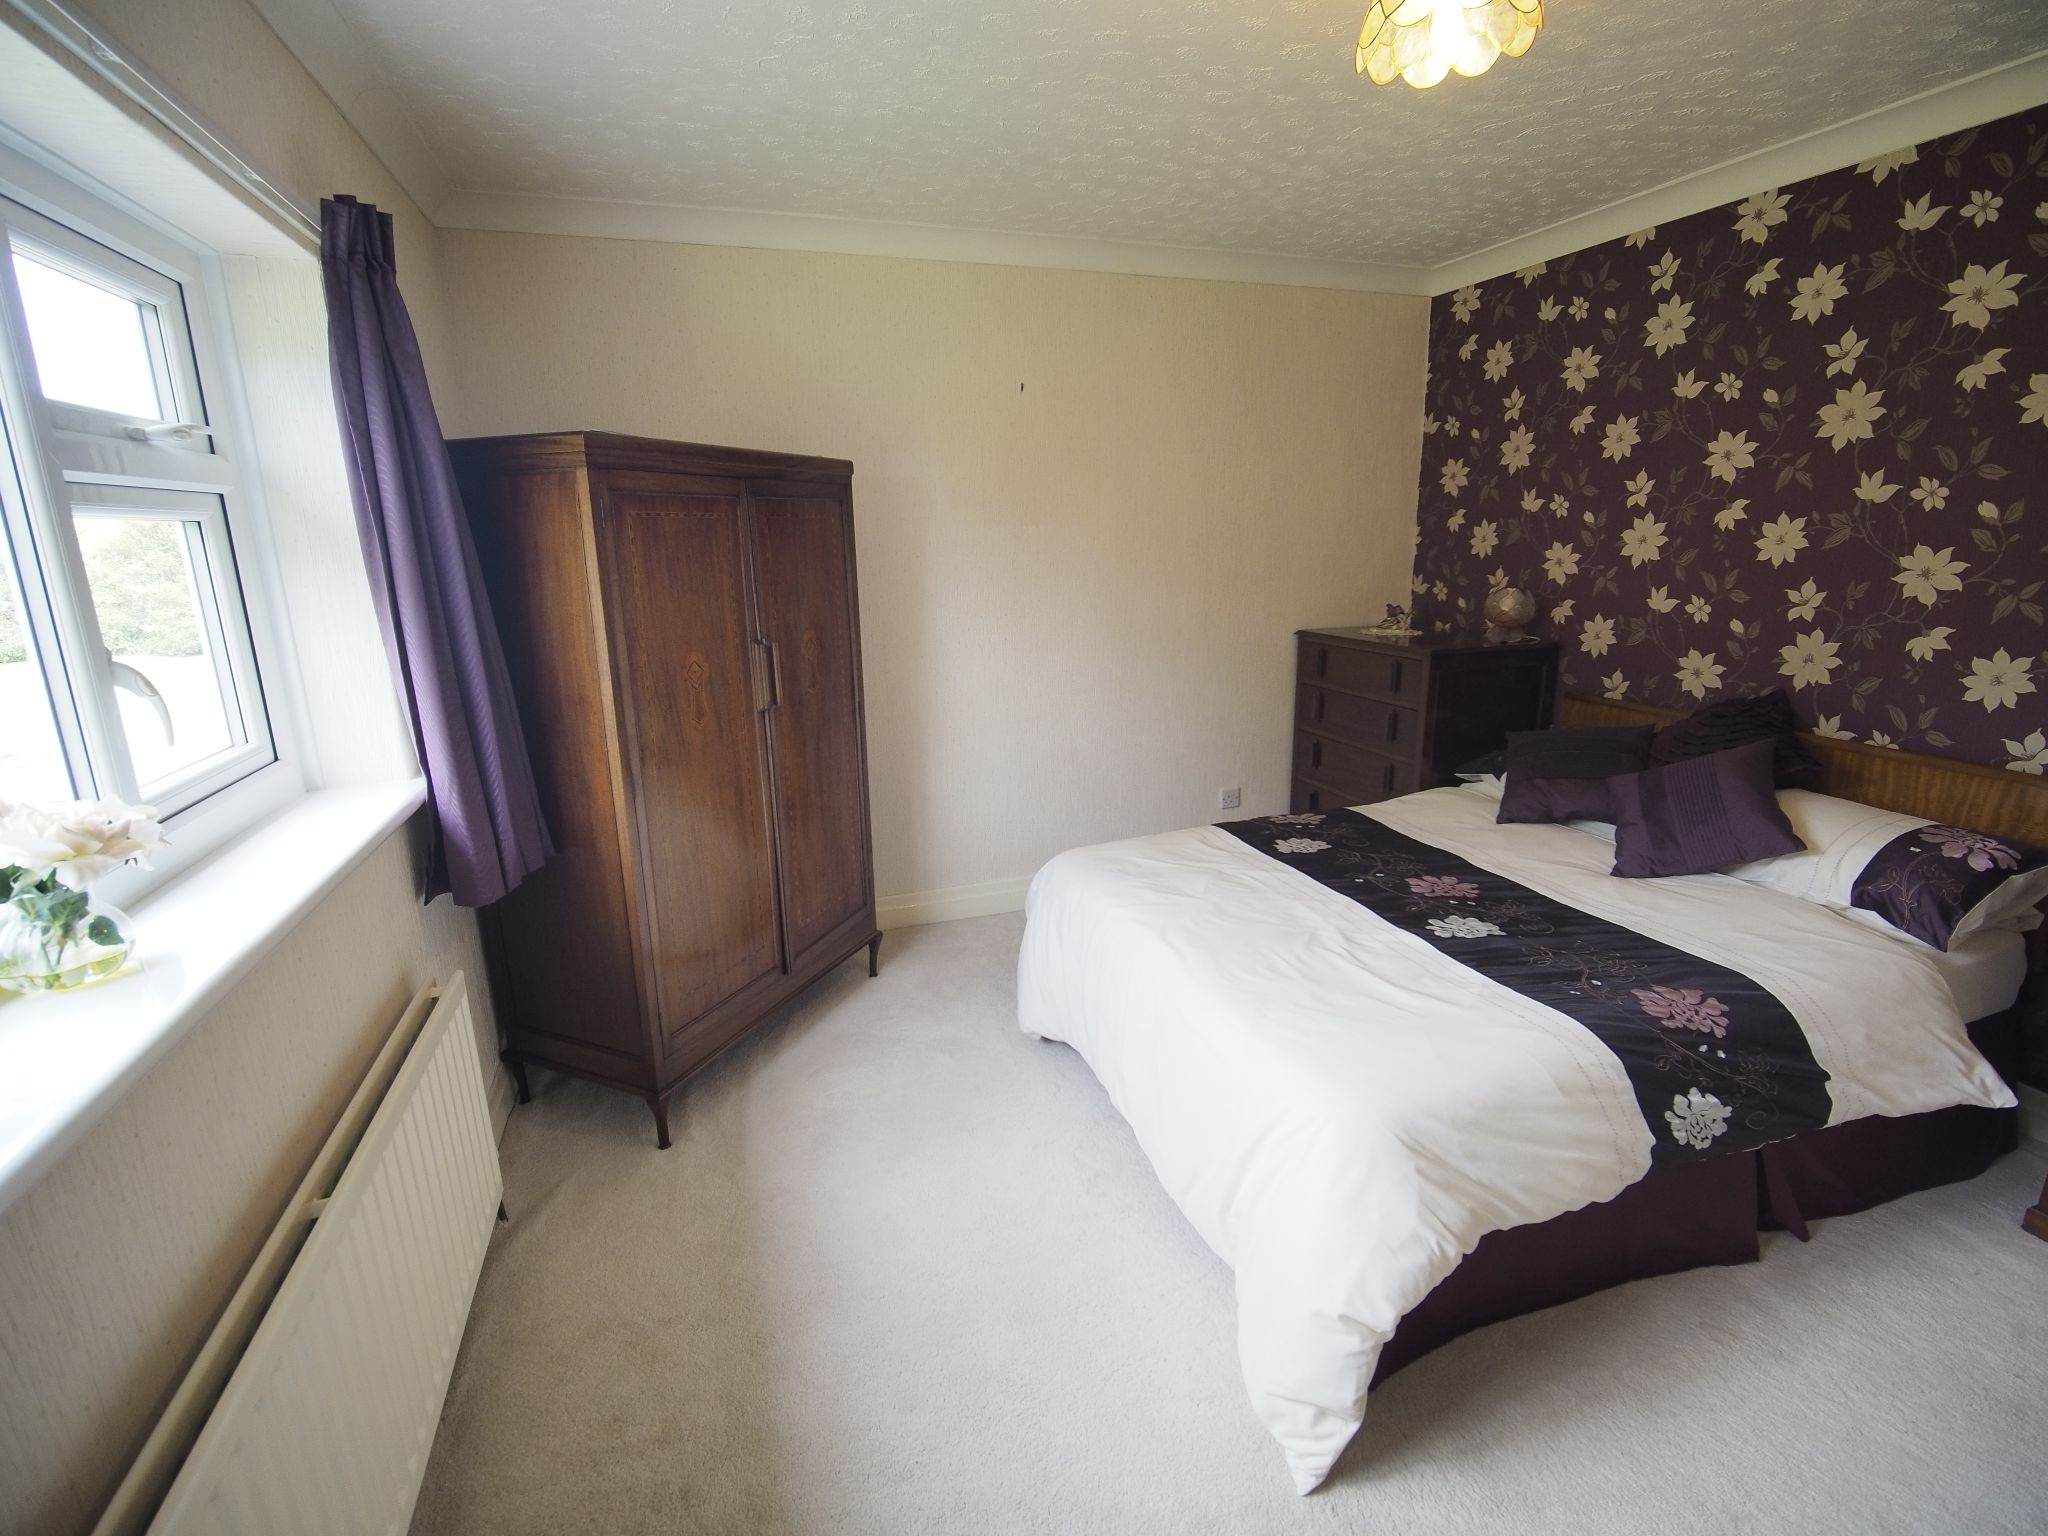 4 bedroom detached house For Sale in Willington - Double Bedroom.